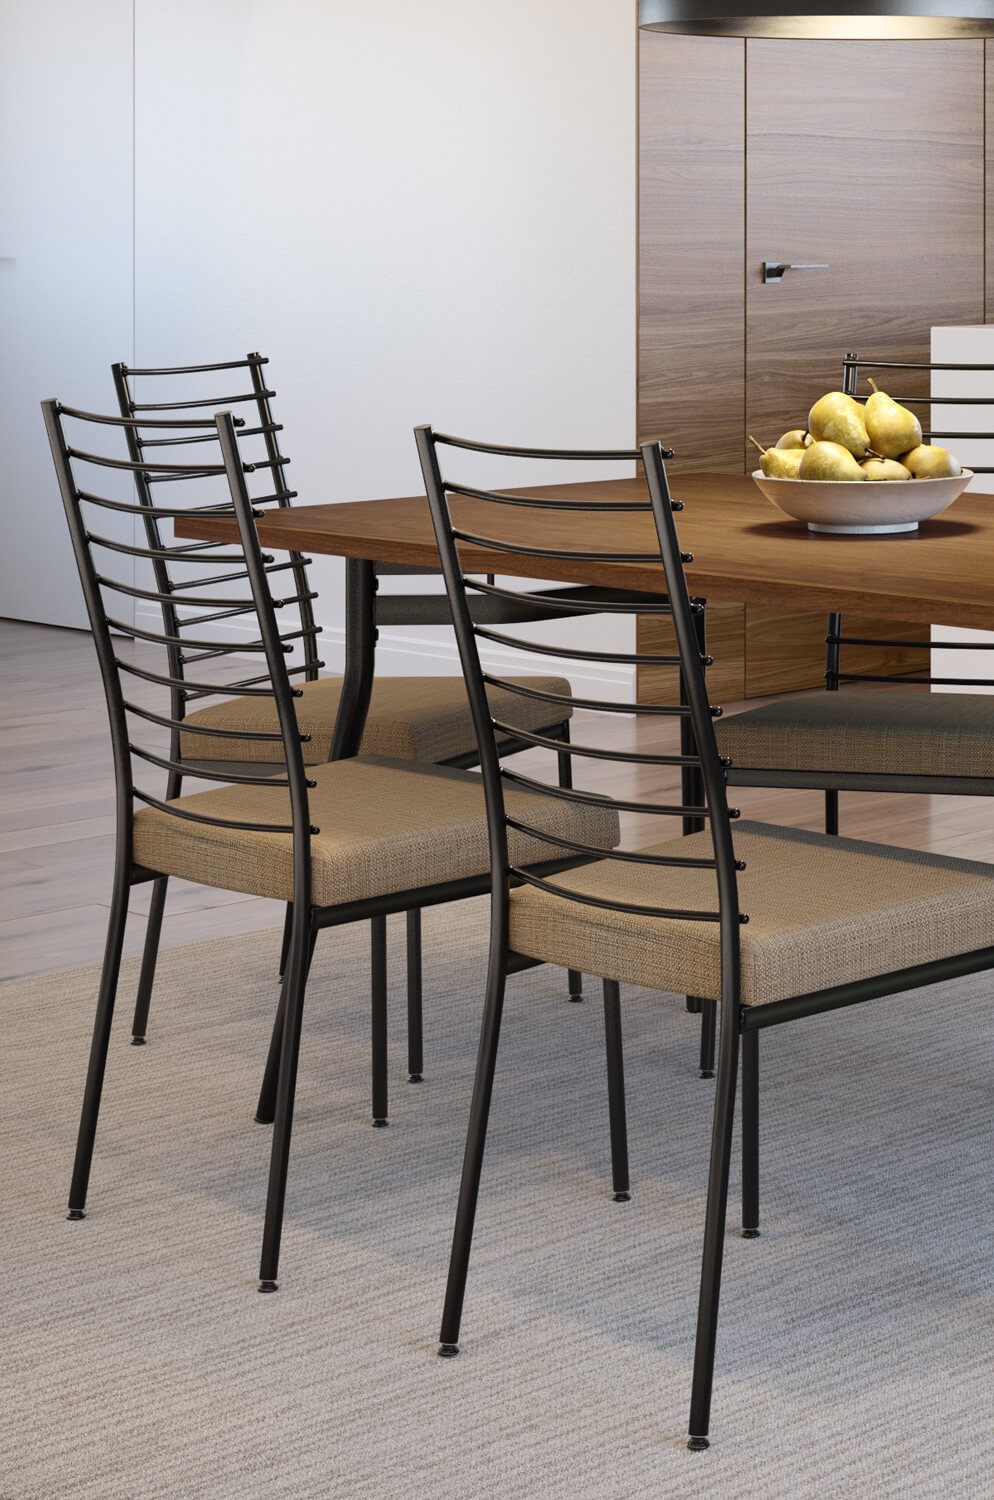 Take A Bite Out Of 24 Modern Dining Rooms: Buy Amisco's Lisia Comfortable Industrial Dining Chair